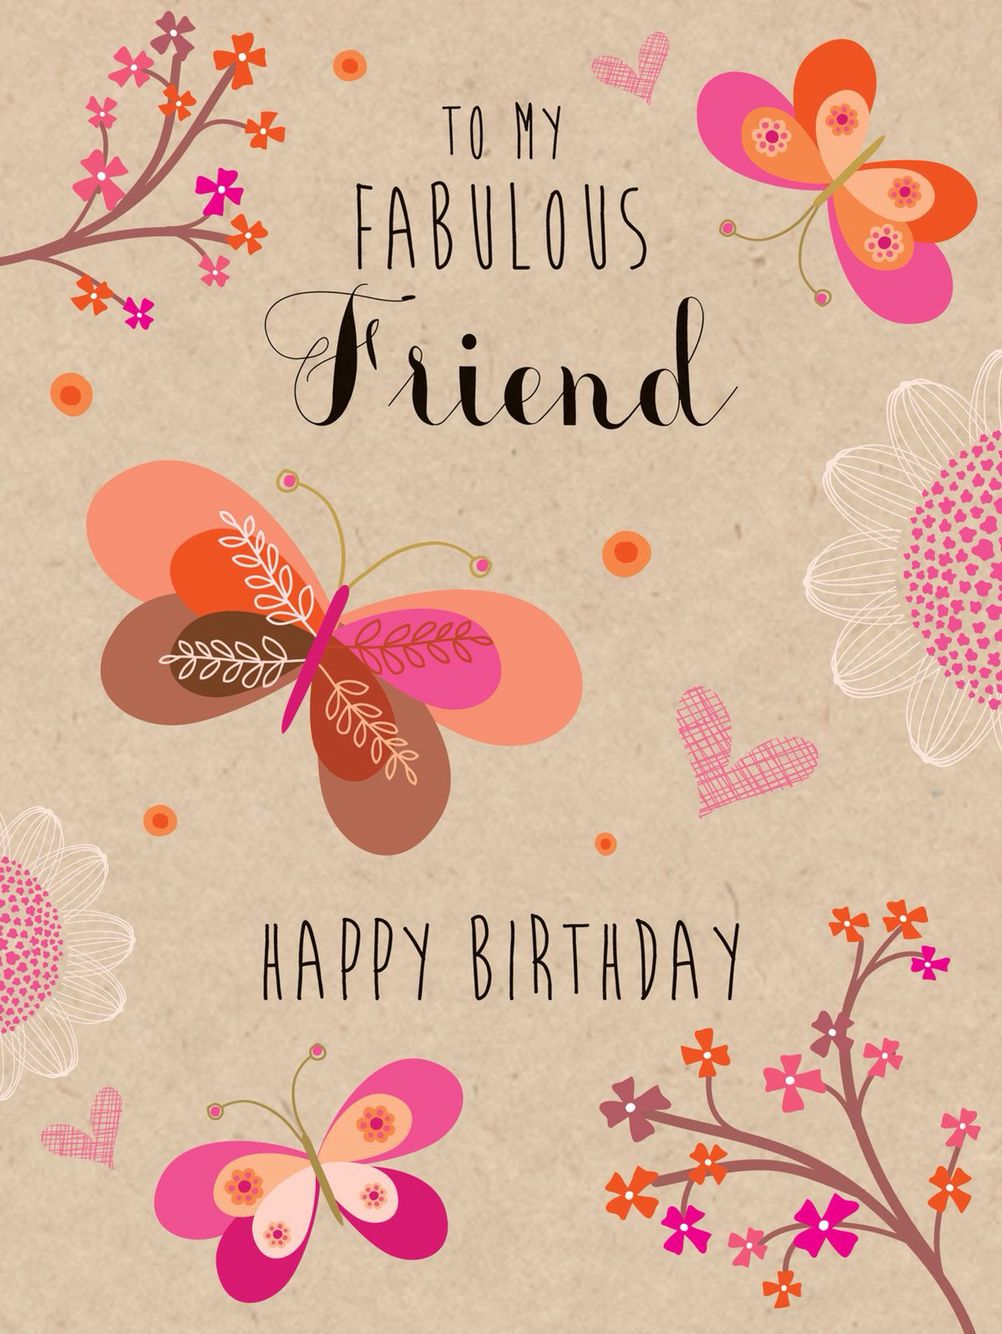 New Happy Birthday Wishes for A Friend and Coworker | Top ...